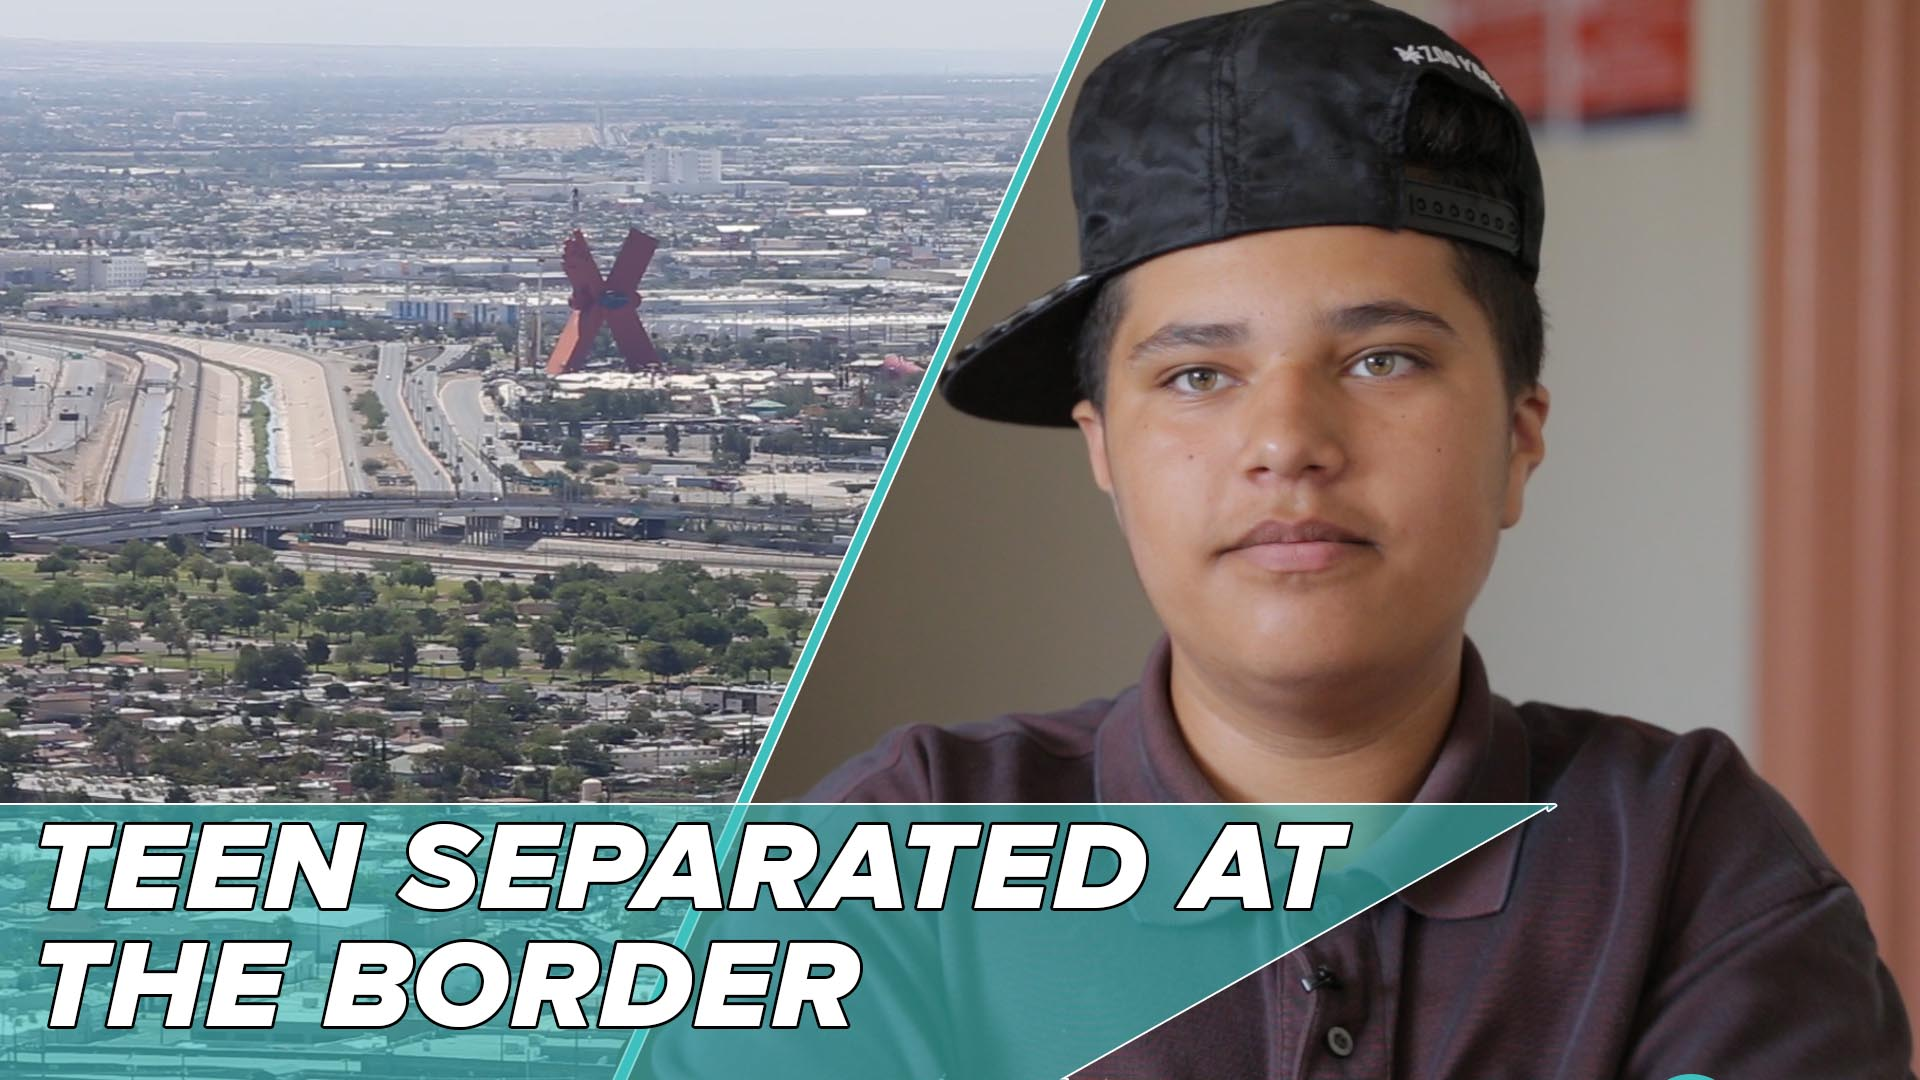 Teen Separated From His Mom at the Border Shares His Ordeal